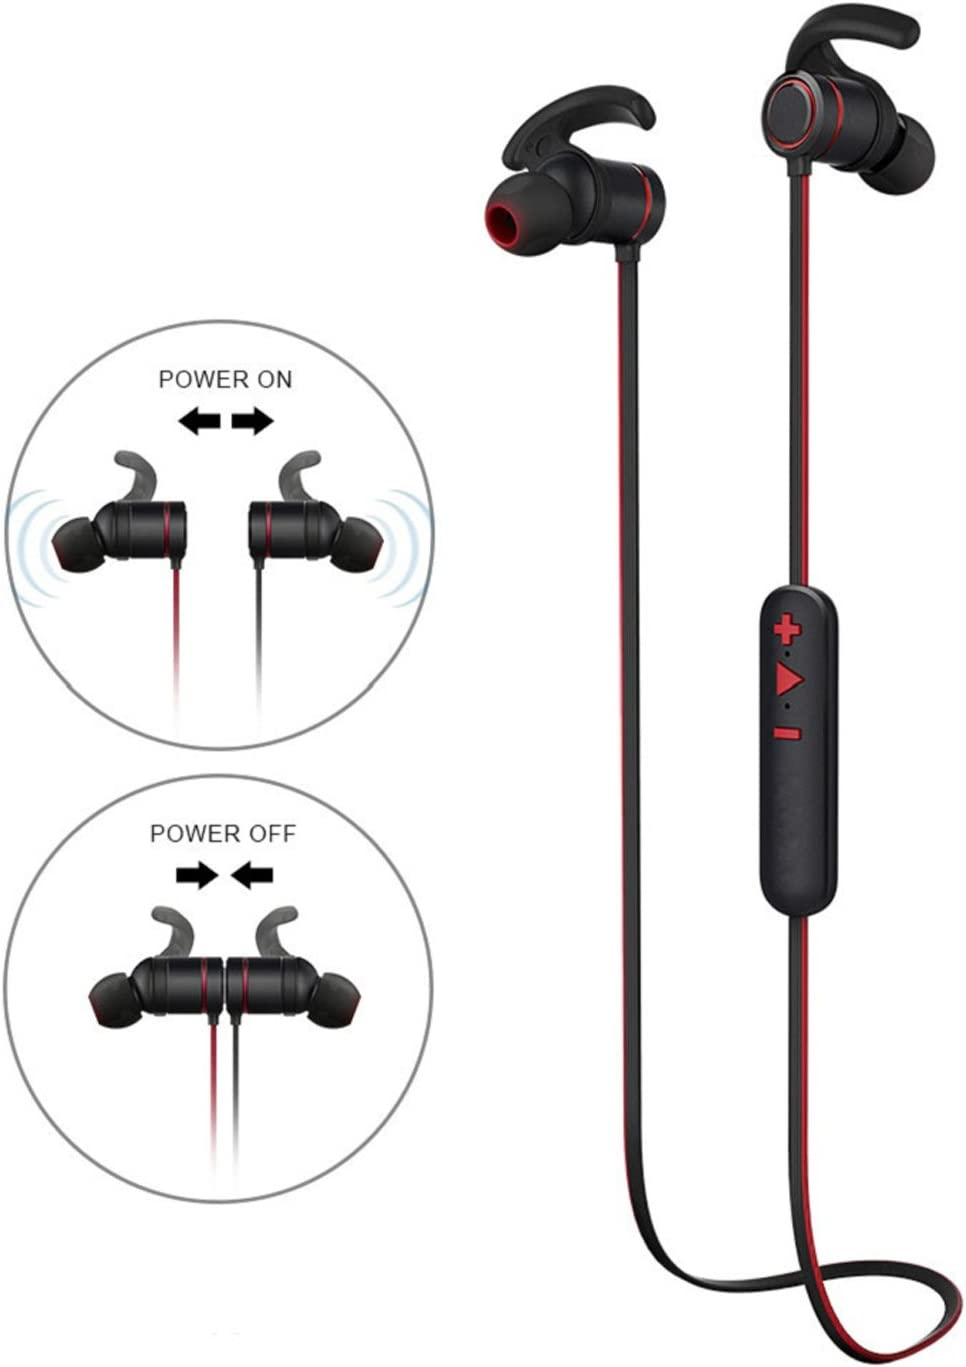 Bluetooth in Ear Headphones,Wireless Earbuds with Microphone HD Stereo Magnetic Super Bass Headsets Noise Cancelling Earphones for Gym Running Workout Compatible with iOS and Android Device-Black